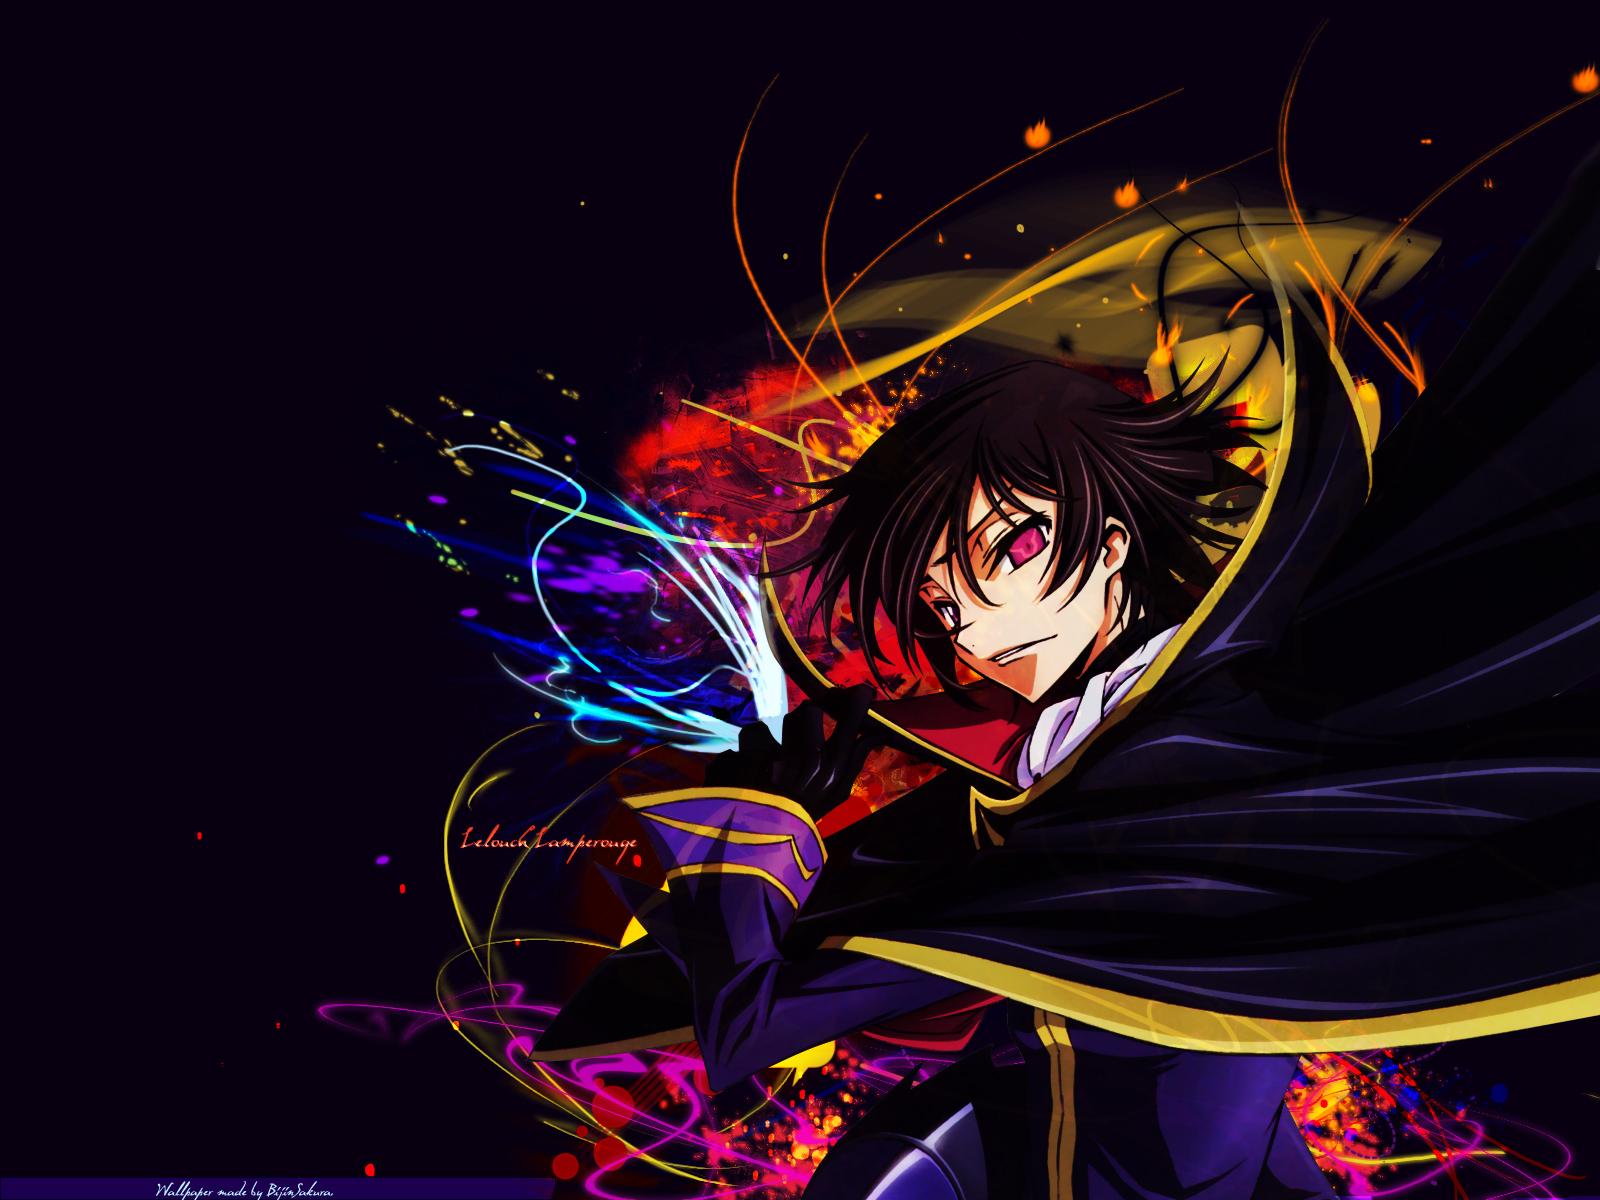 code geass hentai wallpaper